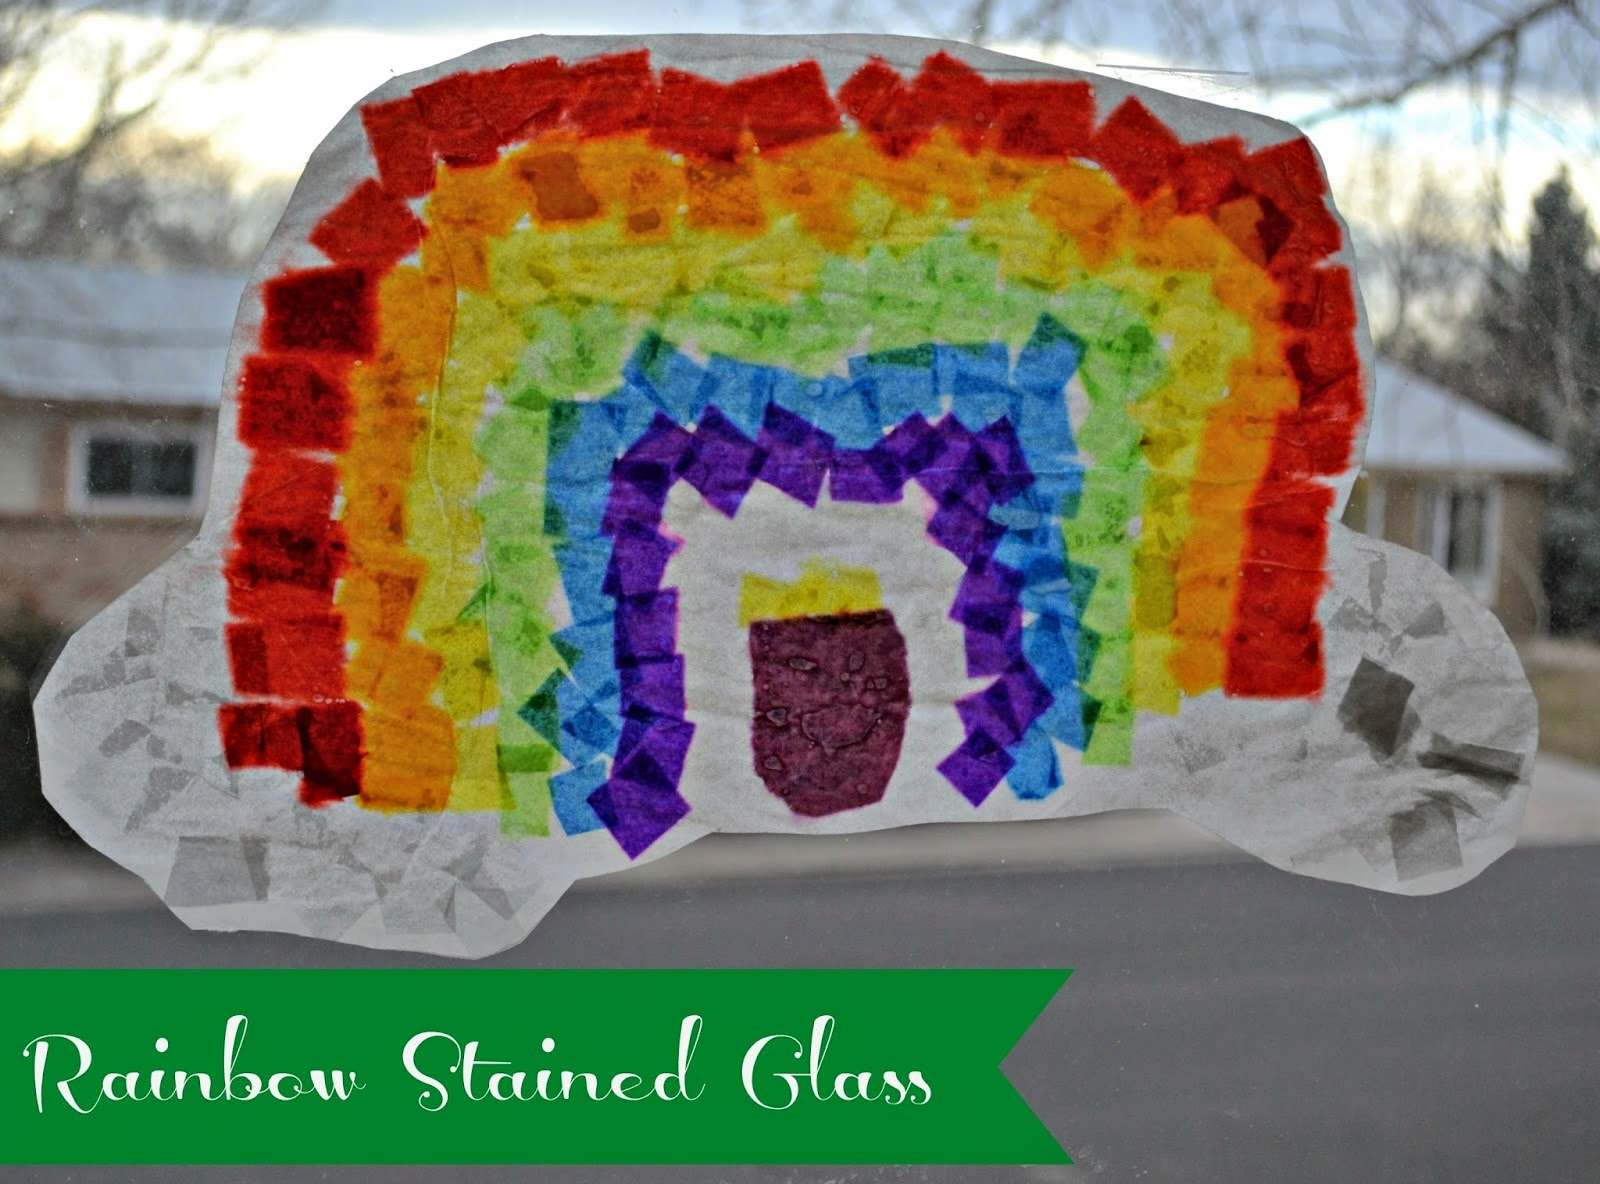 Crafts for st patricks day - St Patrick S Day Craft Ideas St Patricks Day Crafts St Patrick S Day